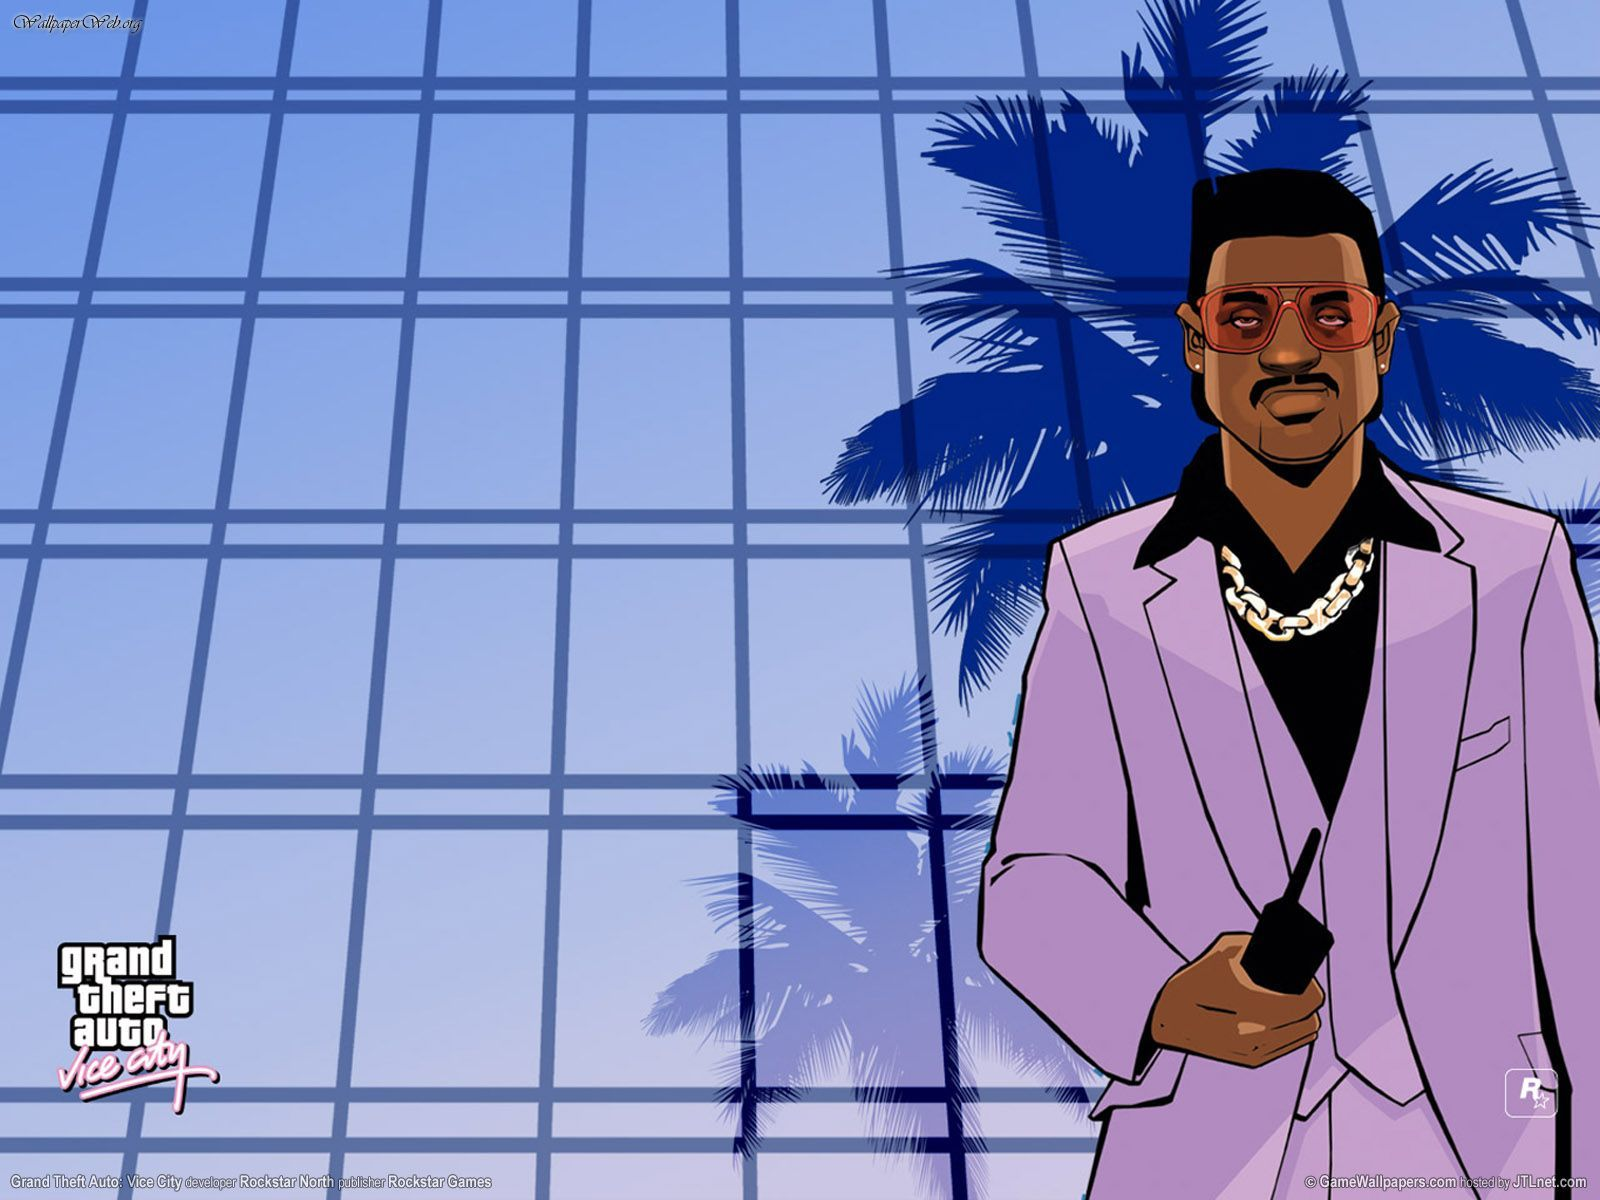 1600x1200 > Grand Theft Auto: Vice City Wallpapers